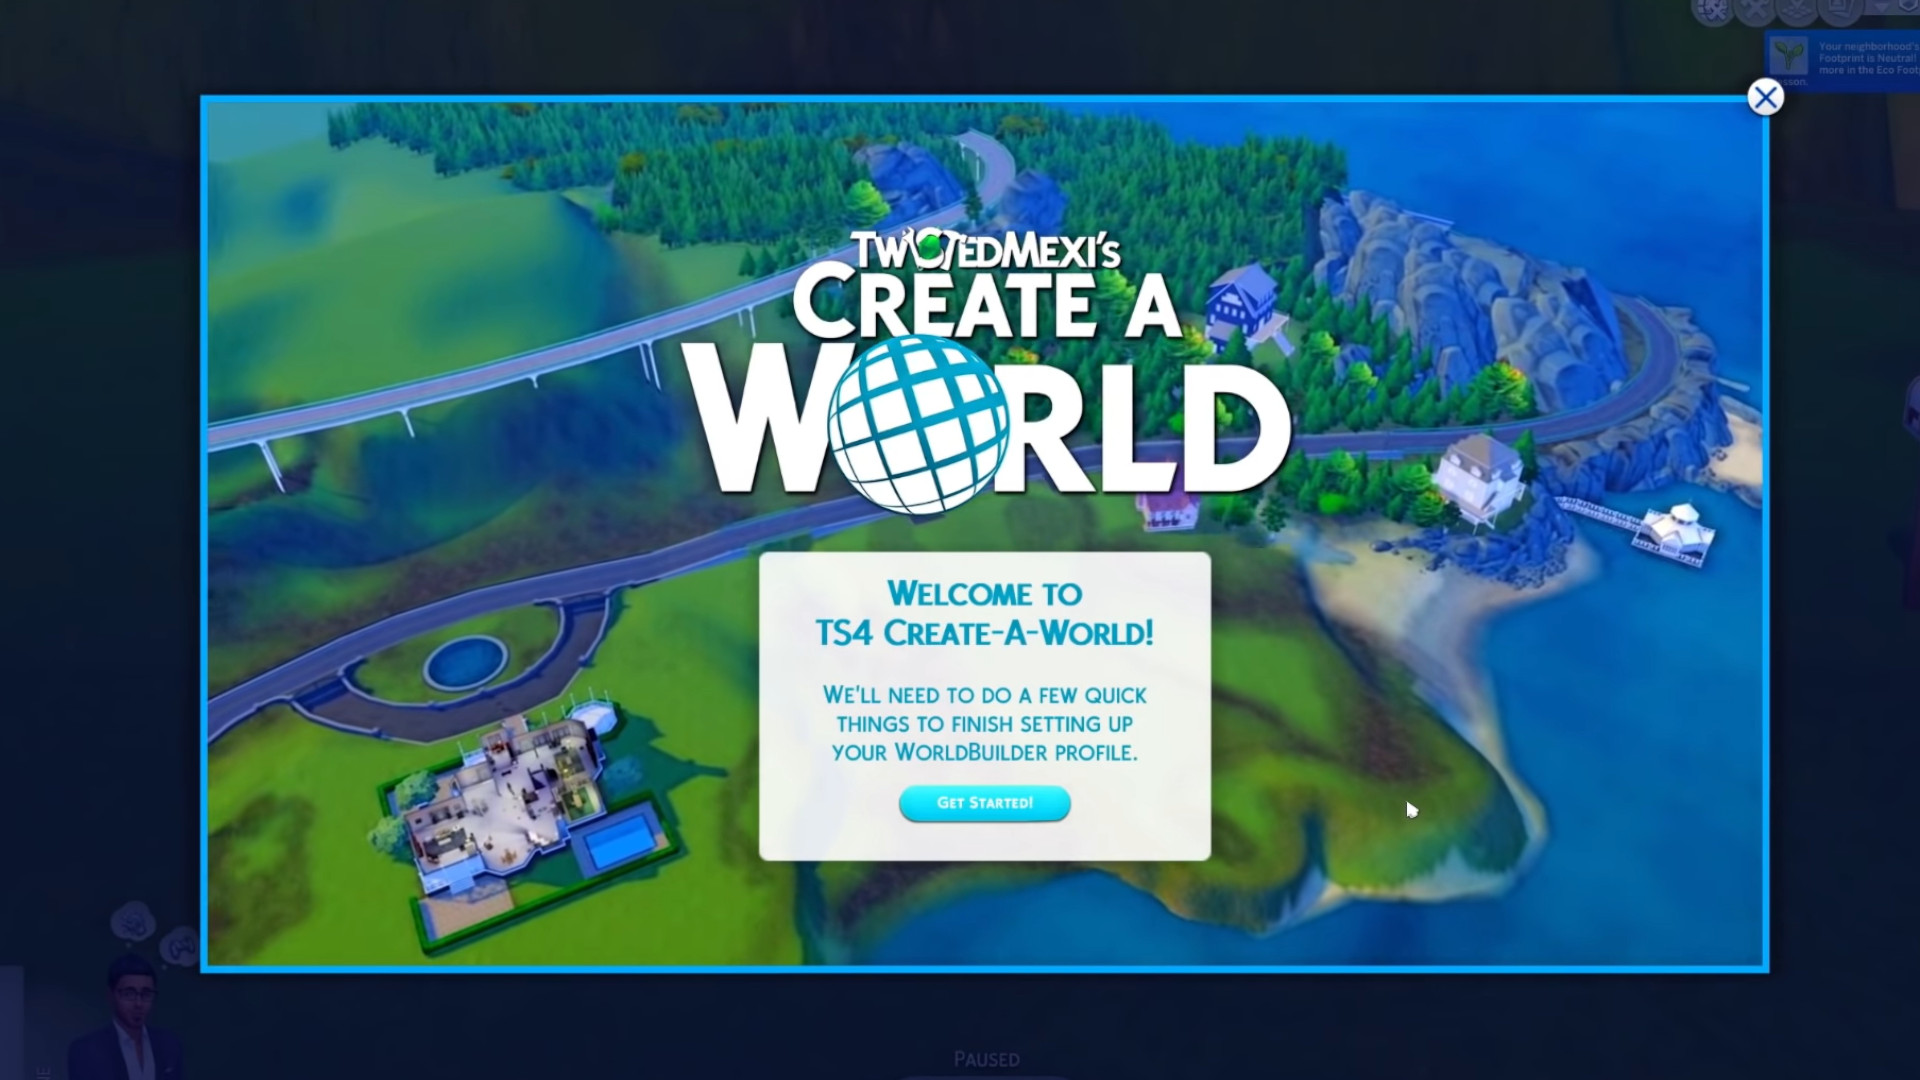 Sims 4 is finally getting a create a world tool – thanks to a modder